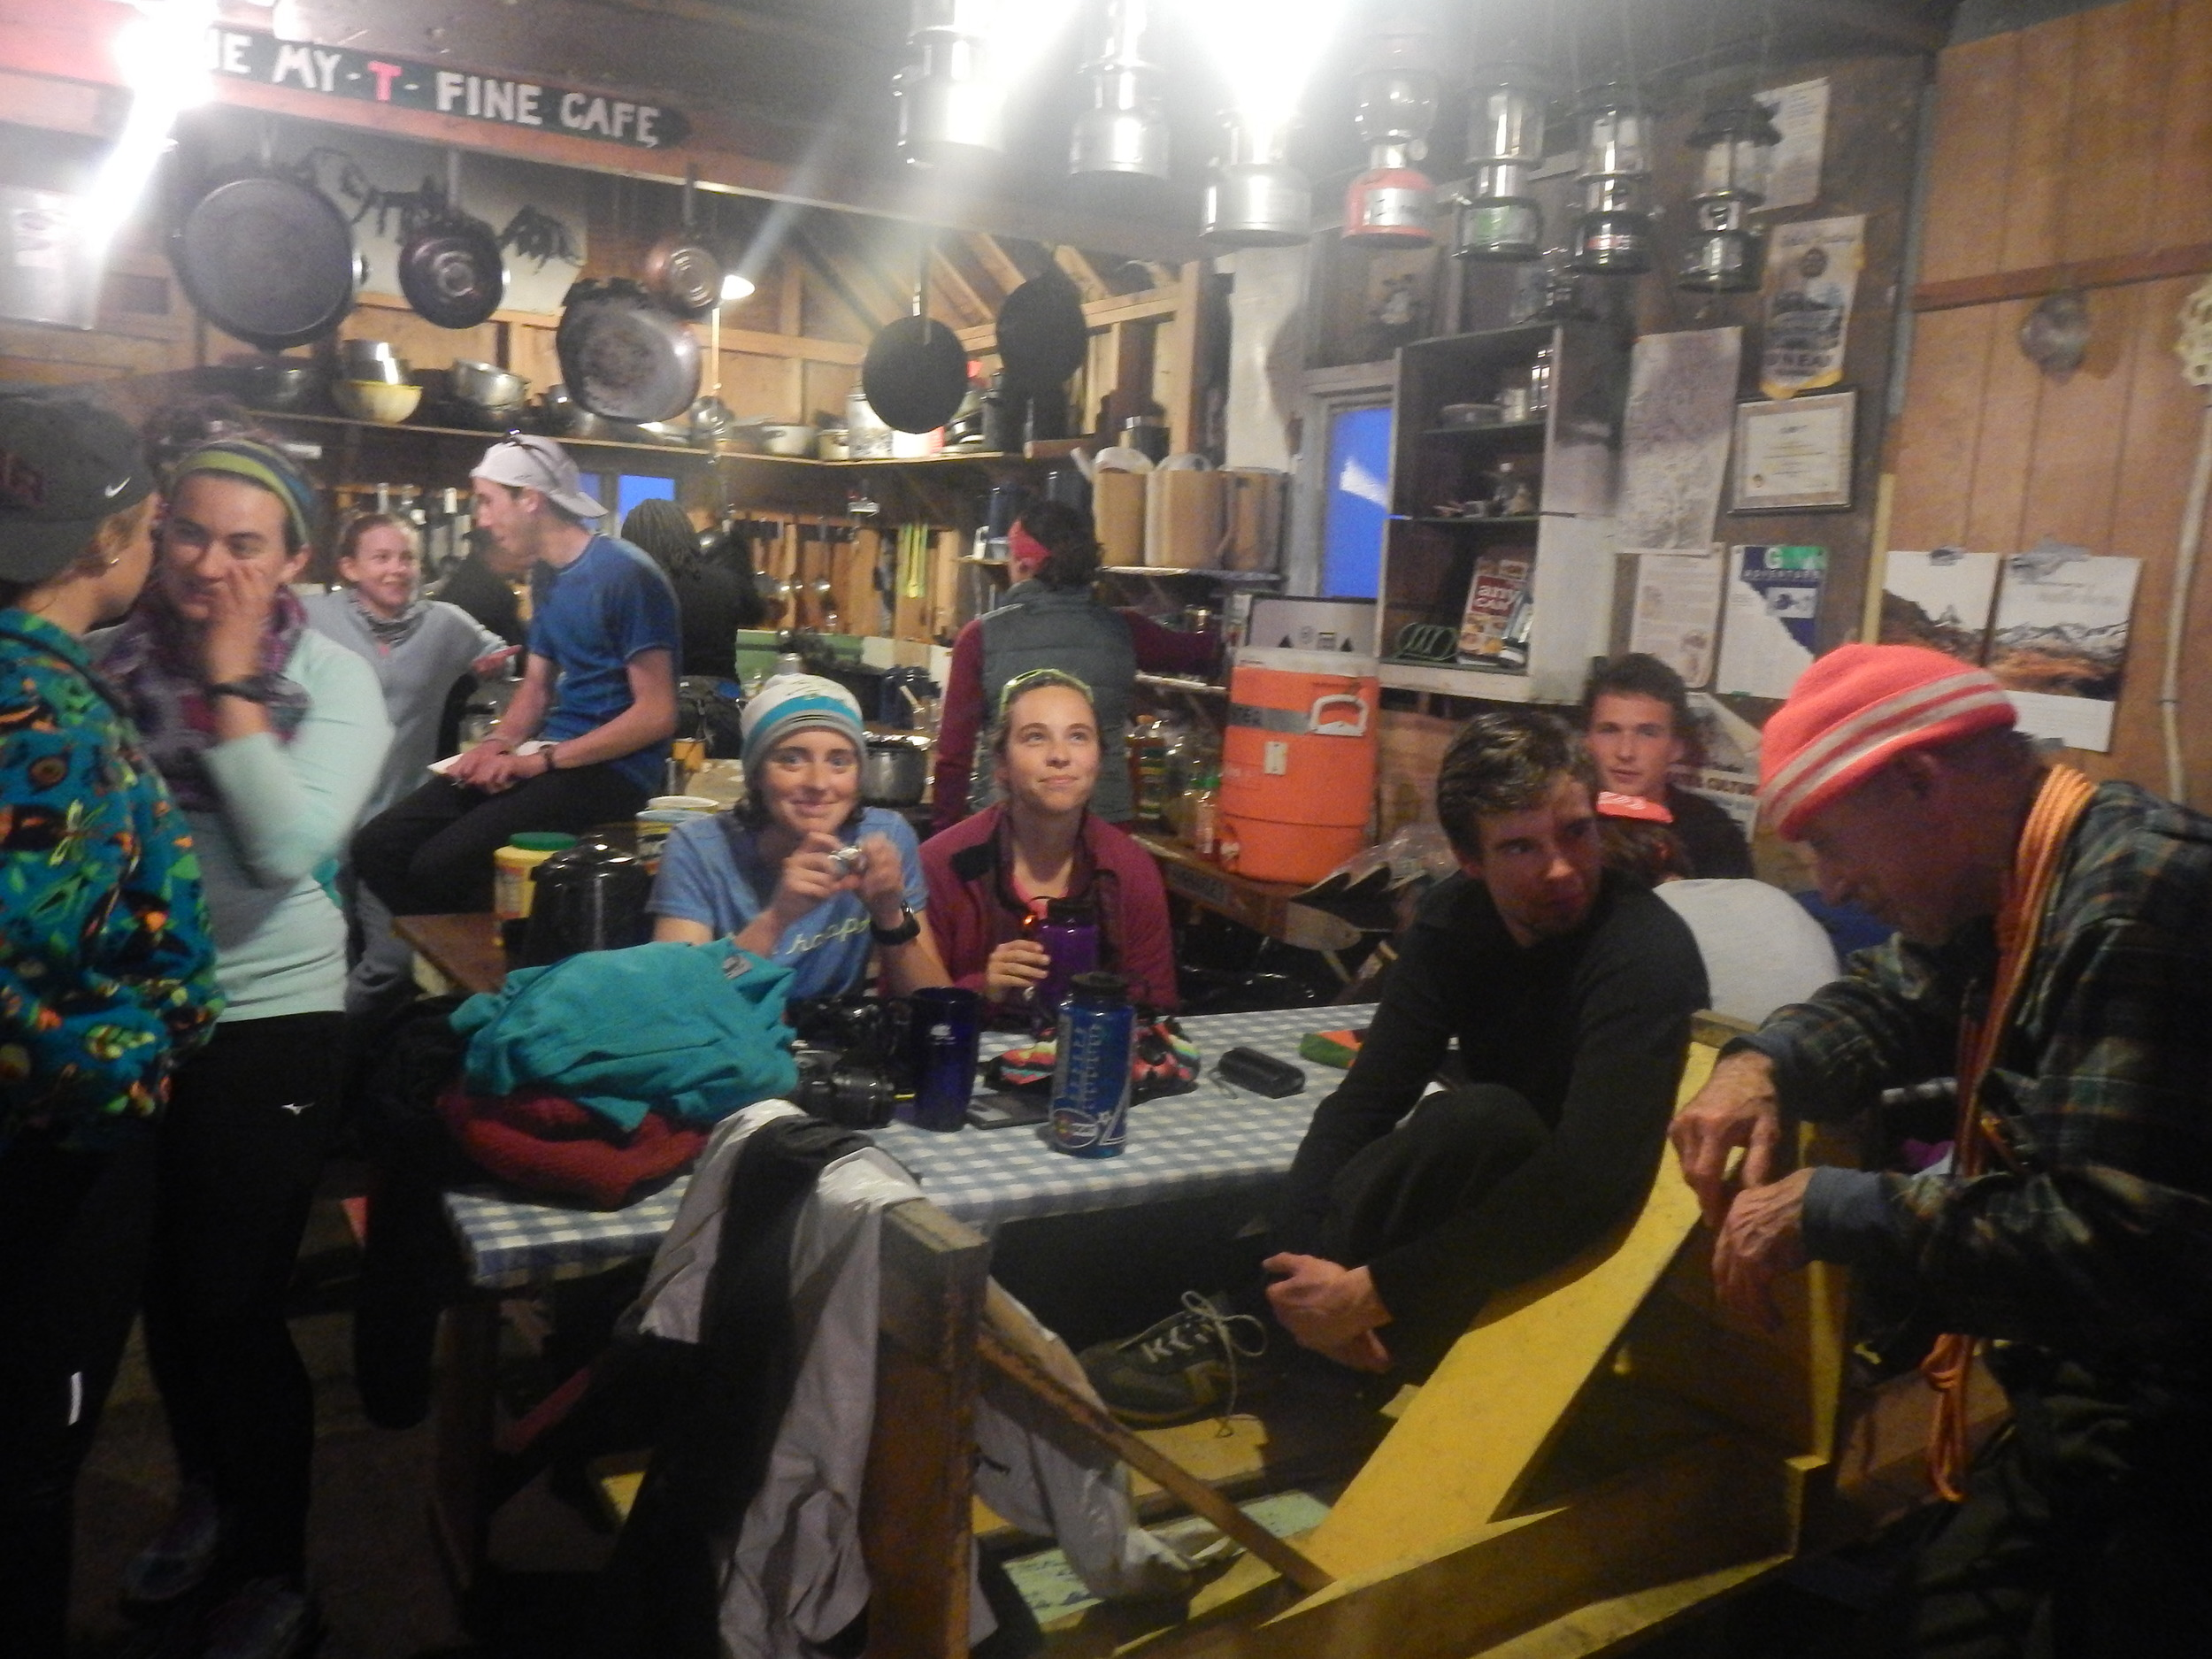 Everyone recaps a great day in the cook shack at C-17.